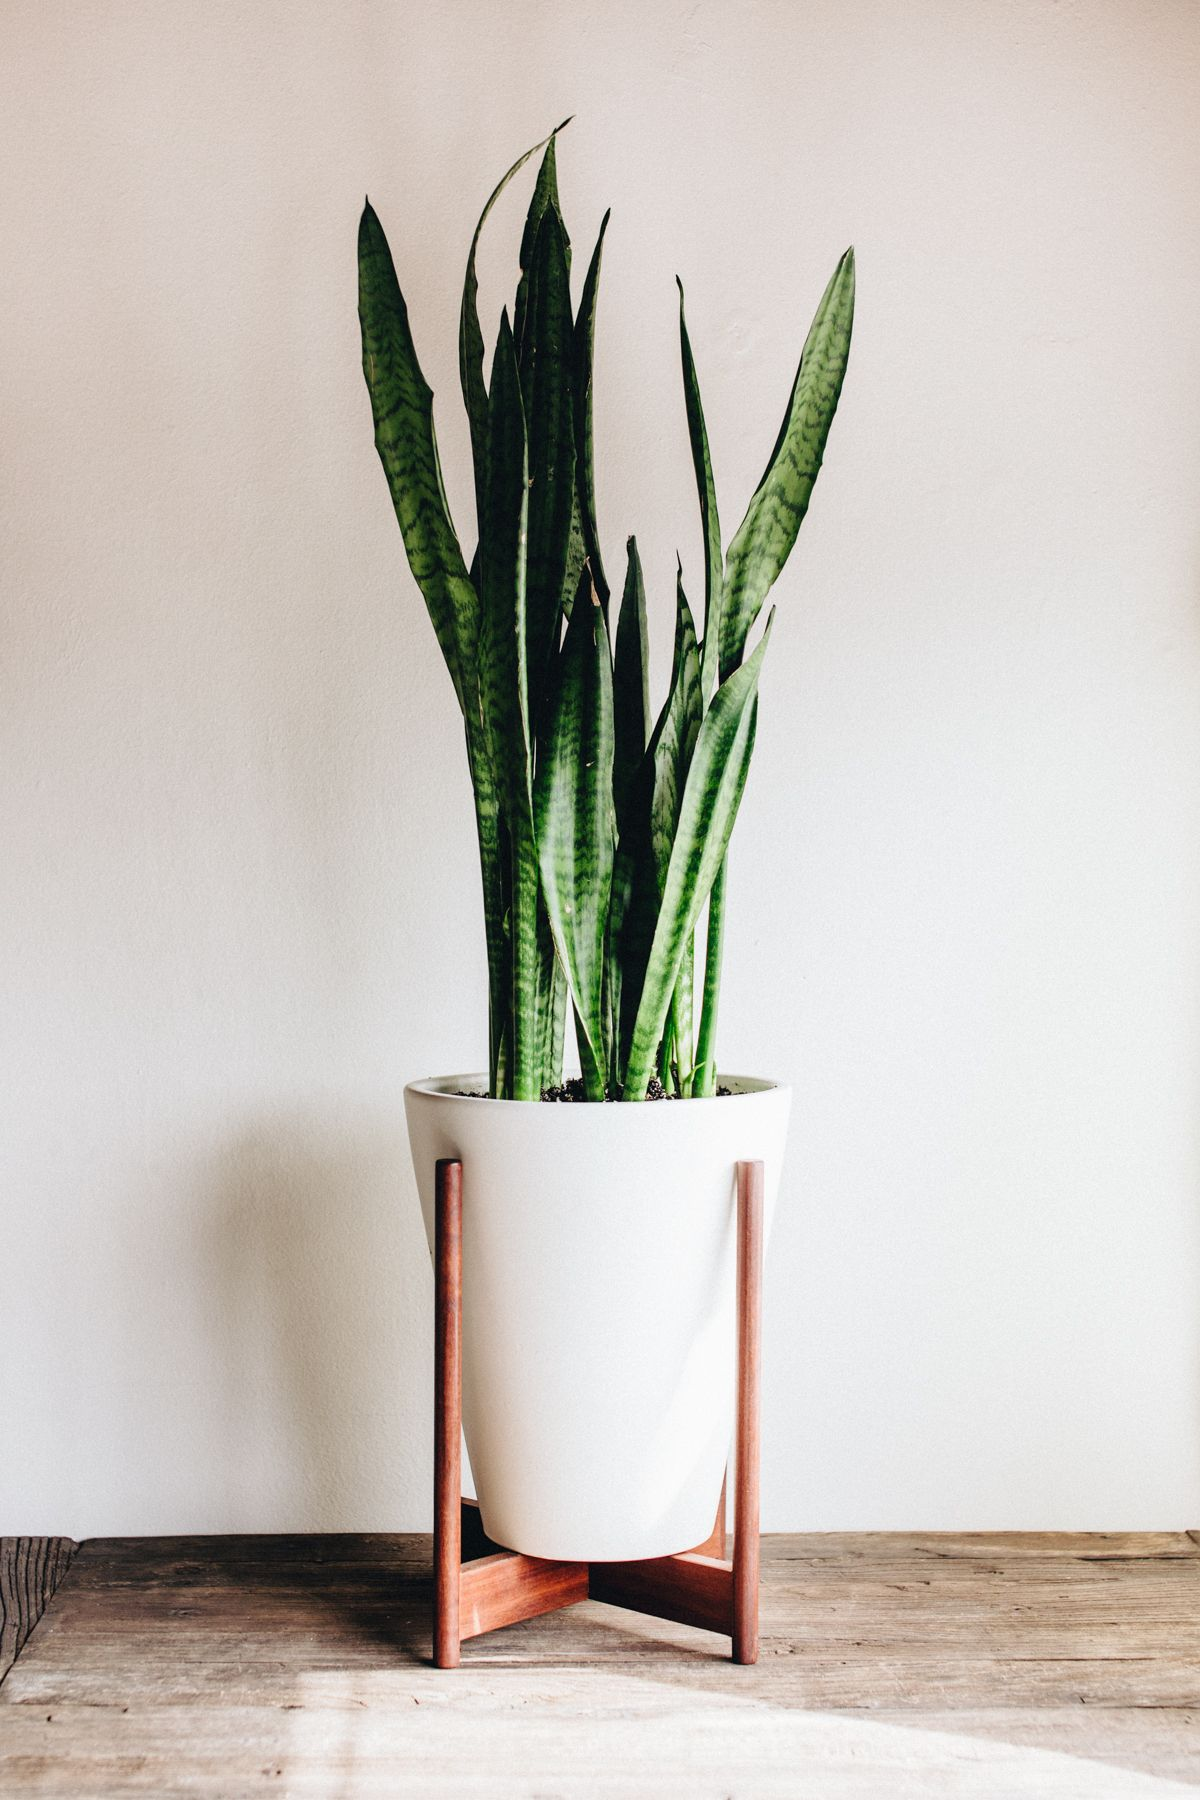 Tall Potted Plants adding green to your home - take aim blog | case study, planters